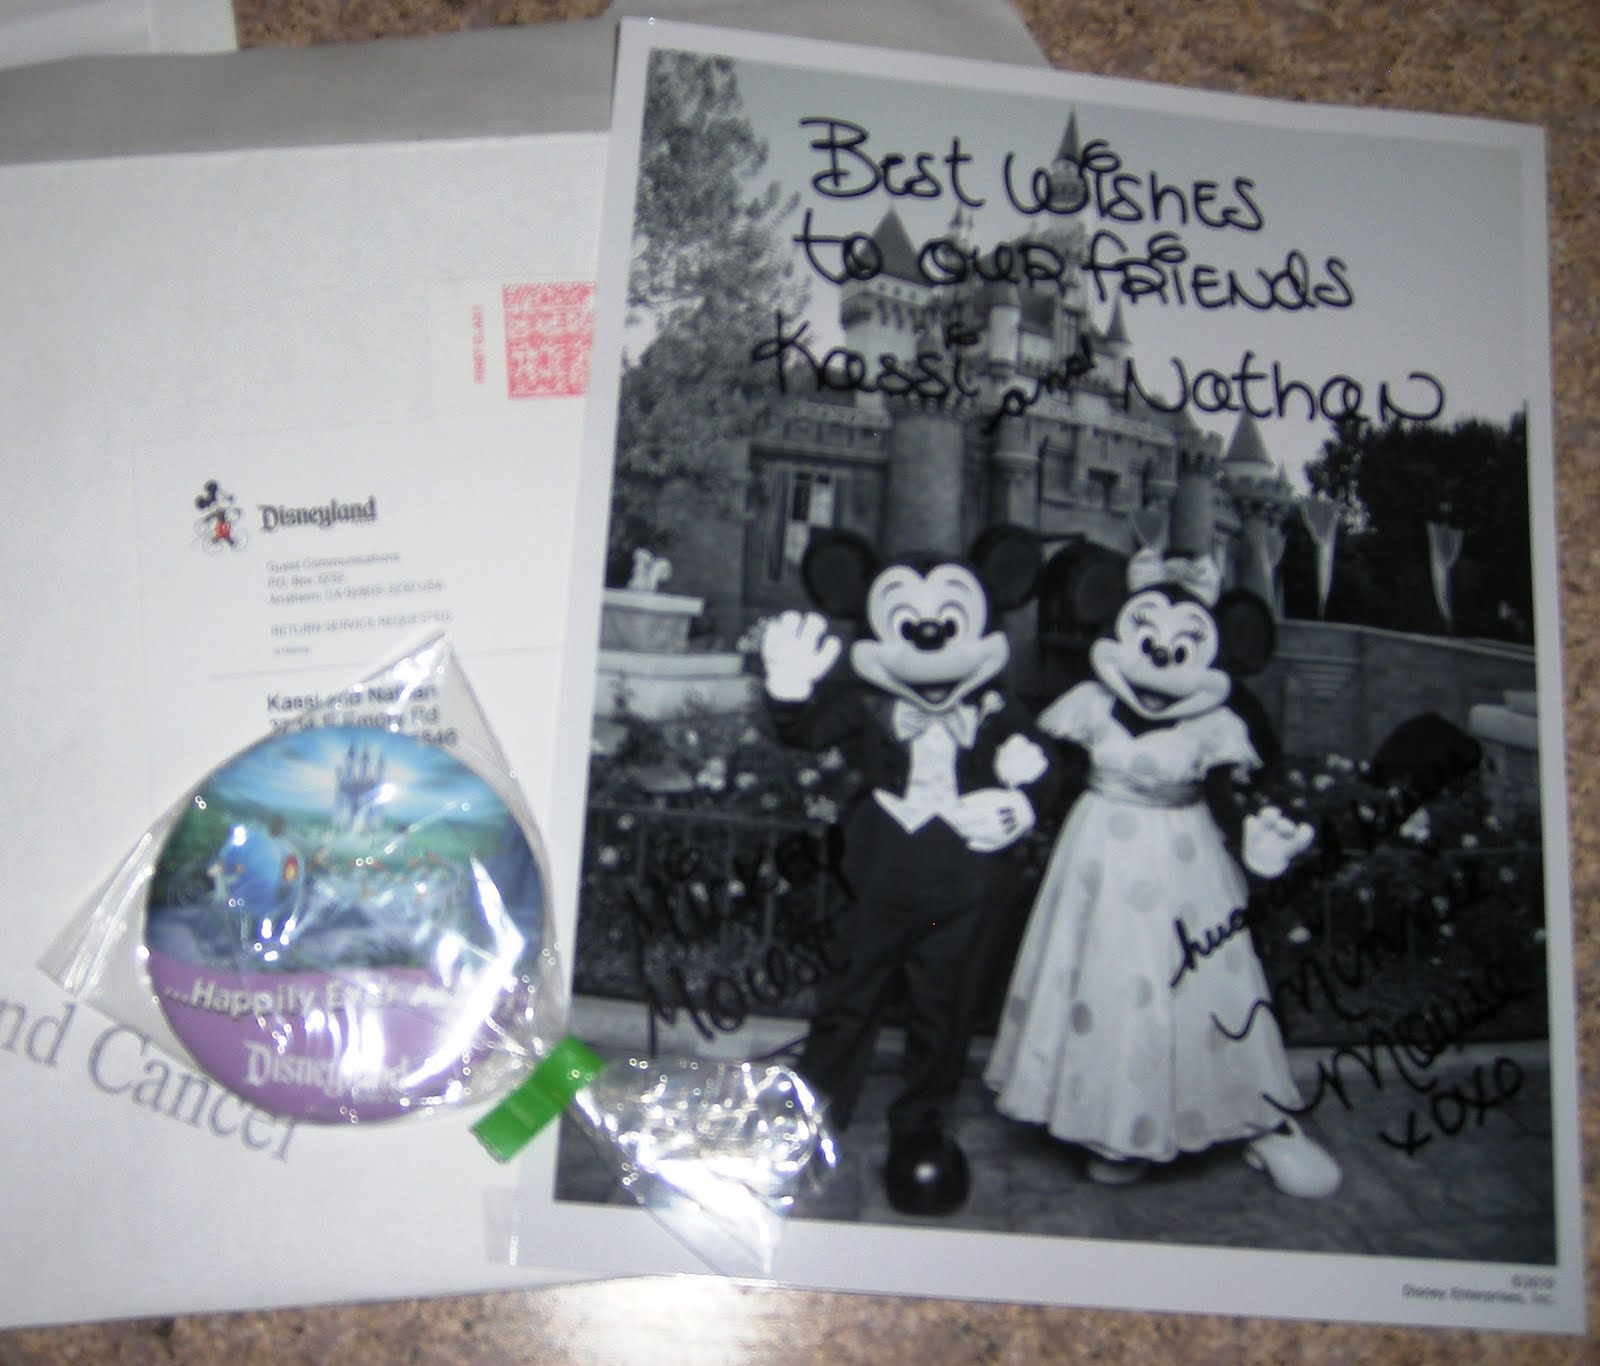 Sending Wedding Invitations Post Office: Kassi: My Road To Mrs: Well Wishes From Disney